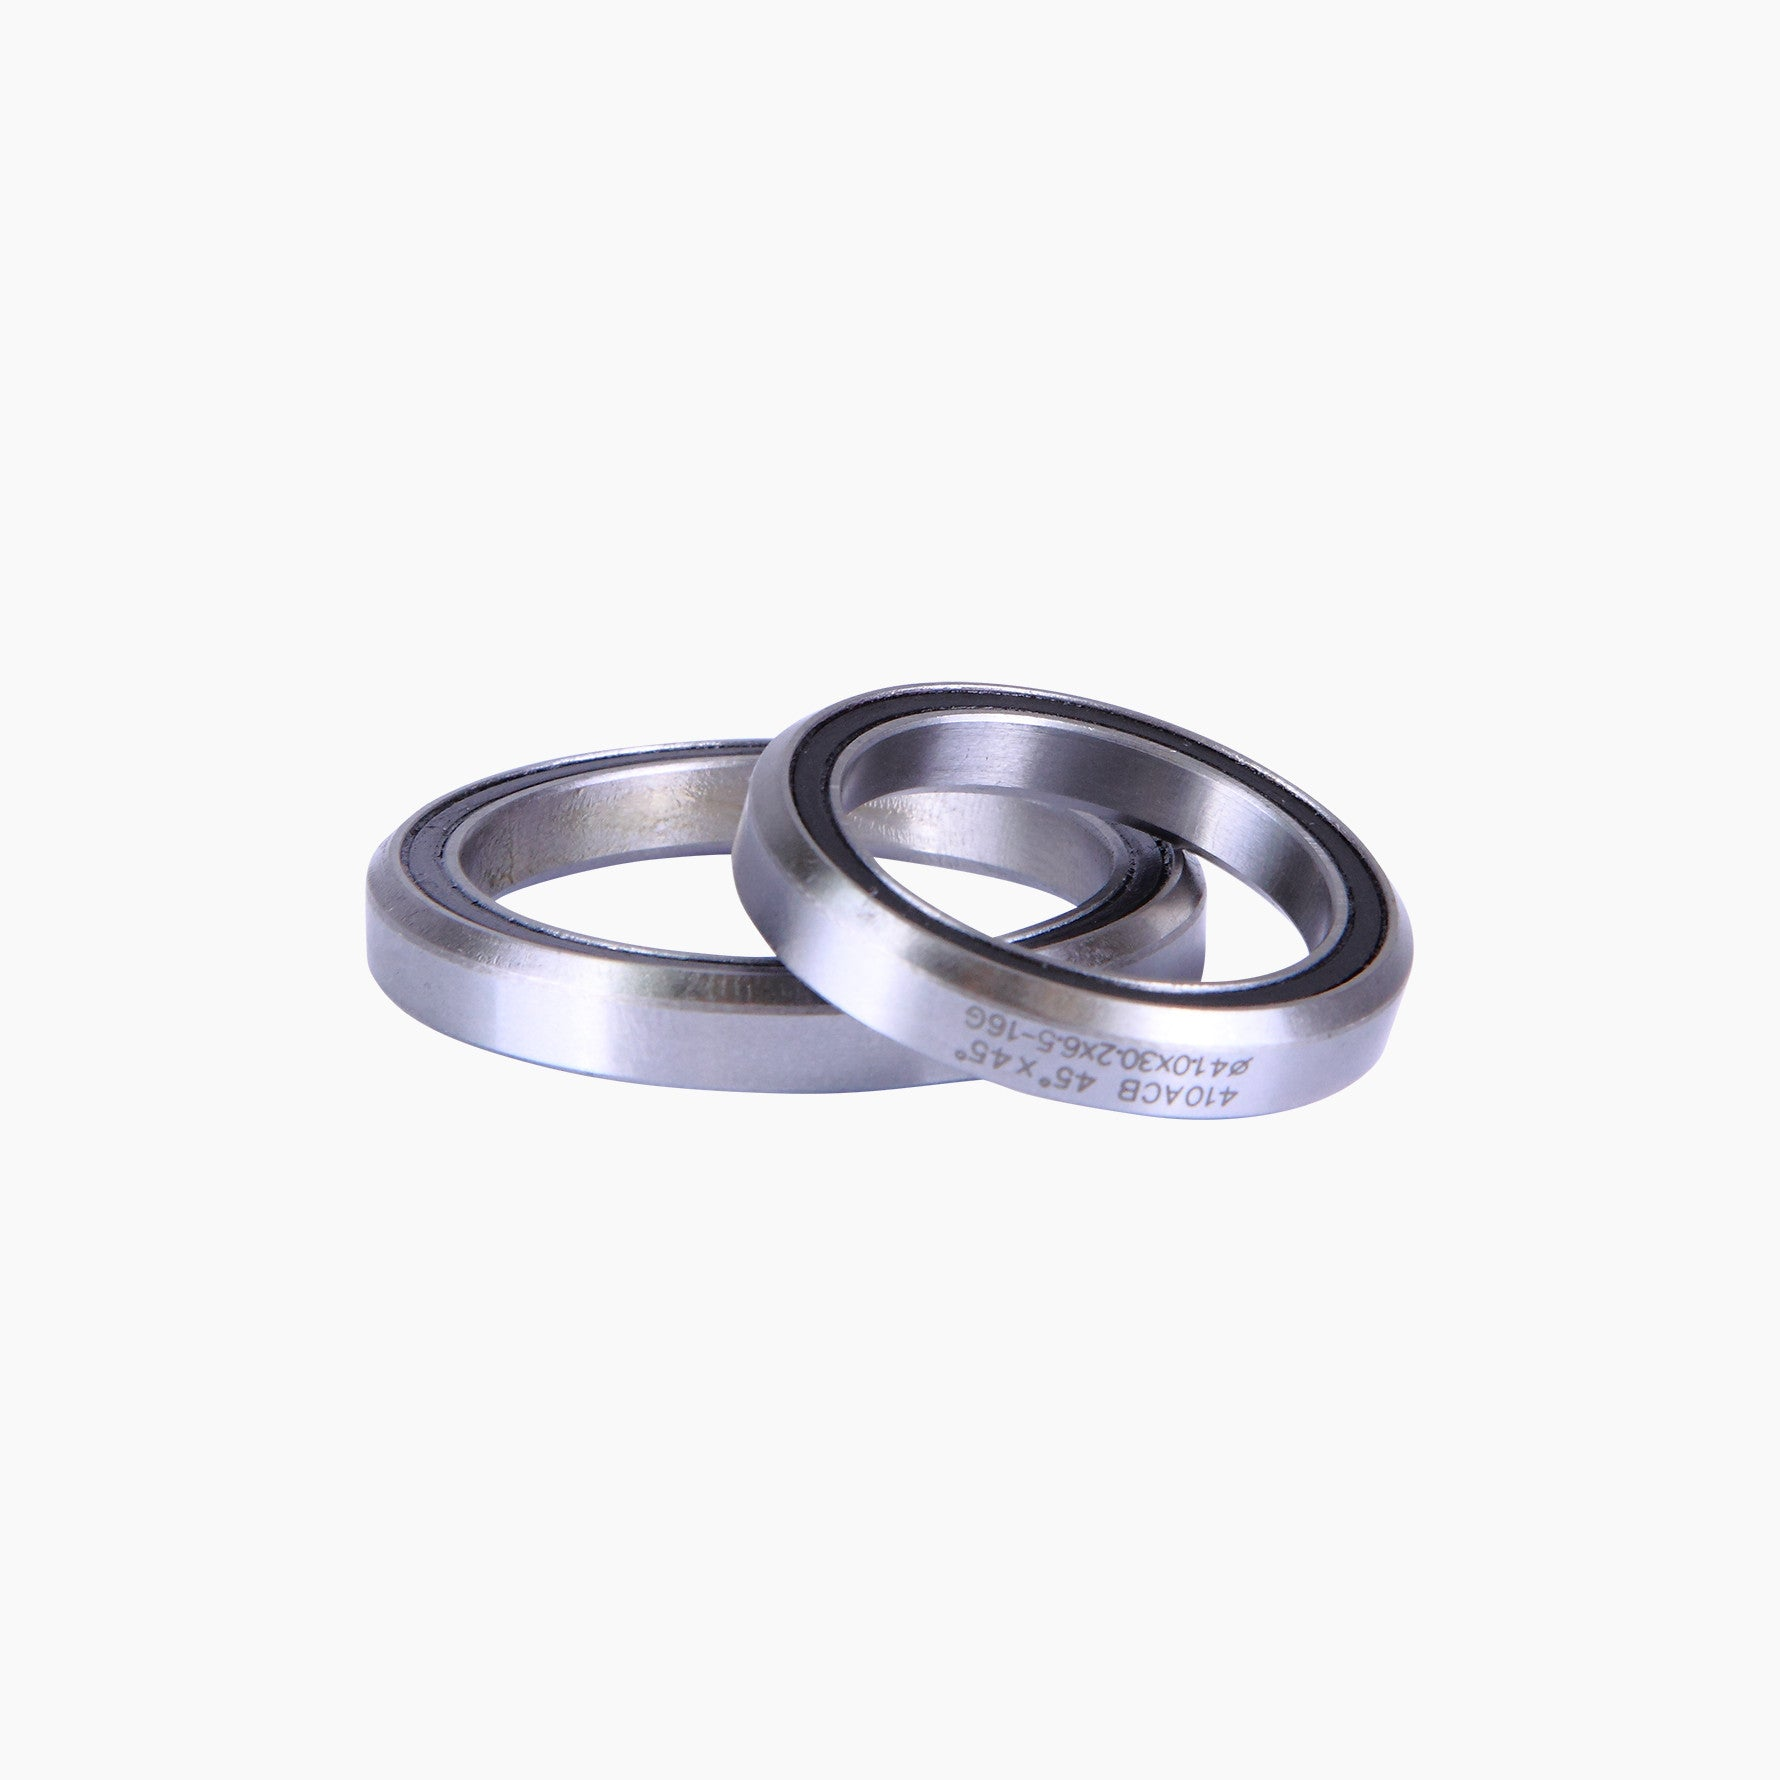 Headset Bearing for the A-83 Tapered Headset // Top & Bottom (Pair)